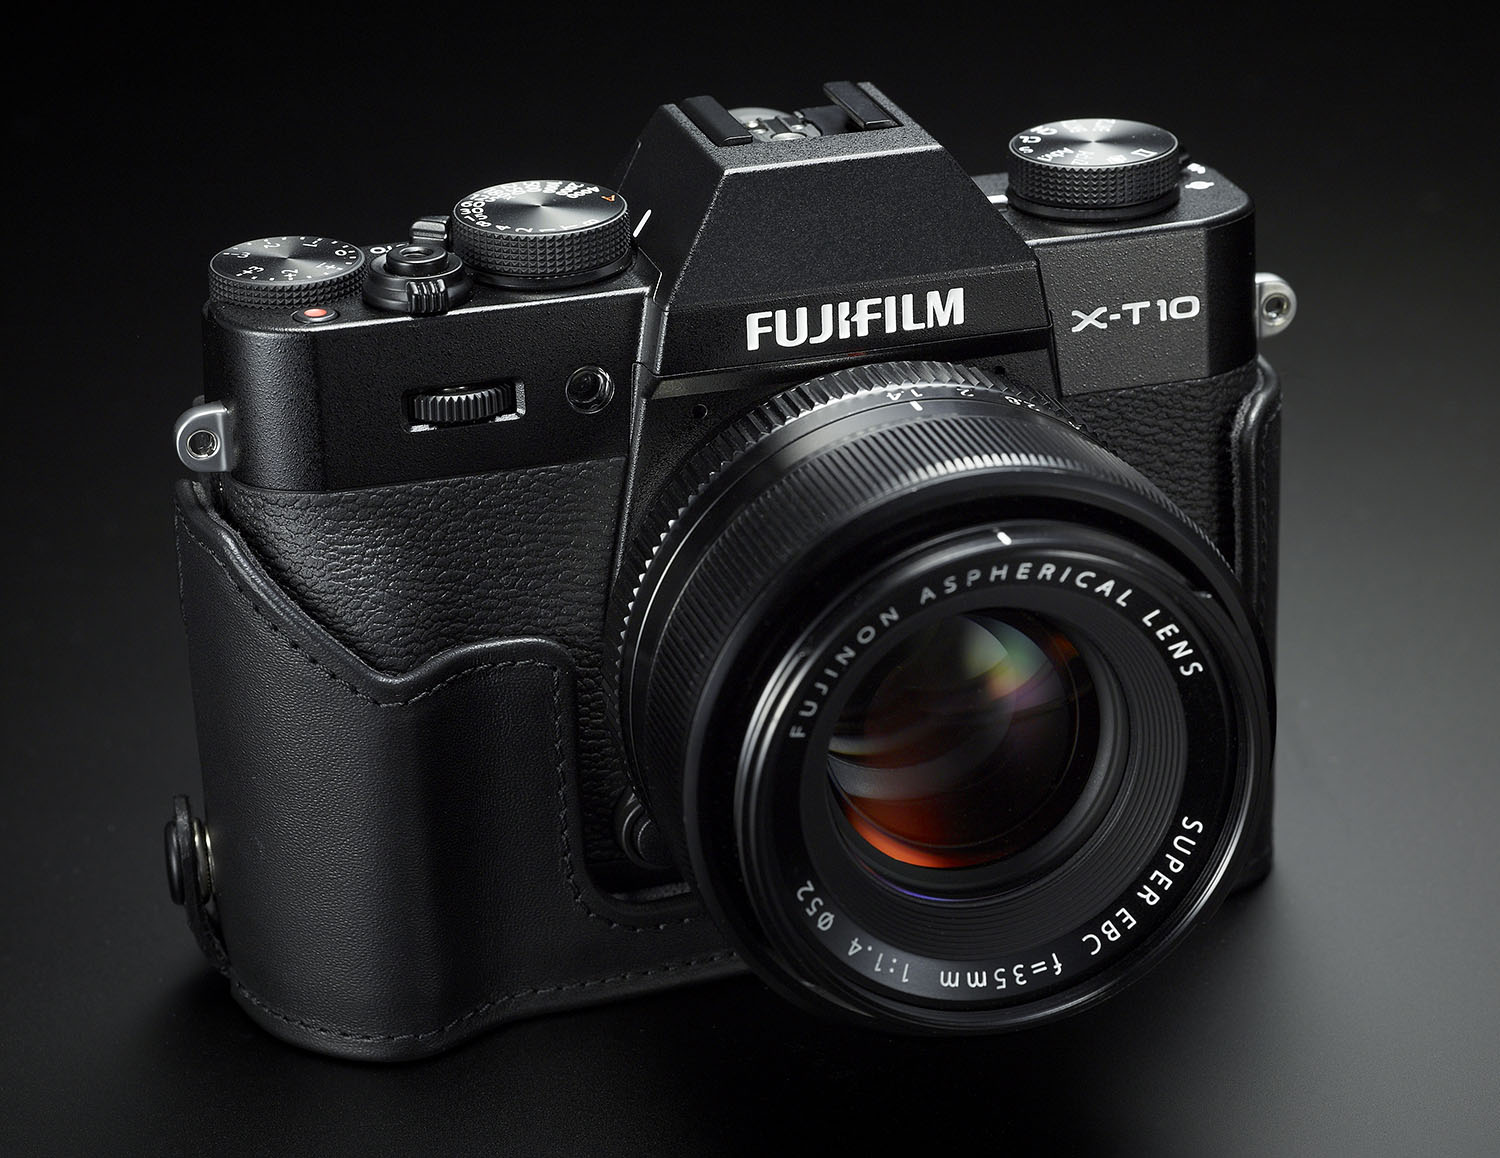 Fuji's X-T10 with half case – Image courtesy of Fujifilm Canada.